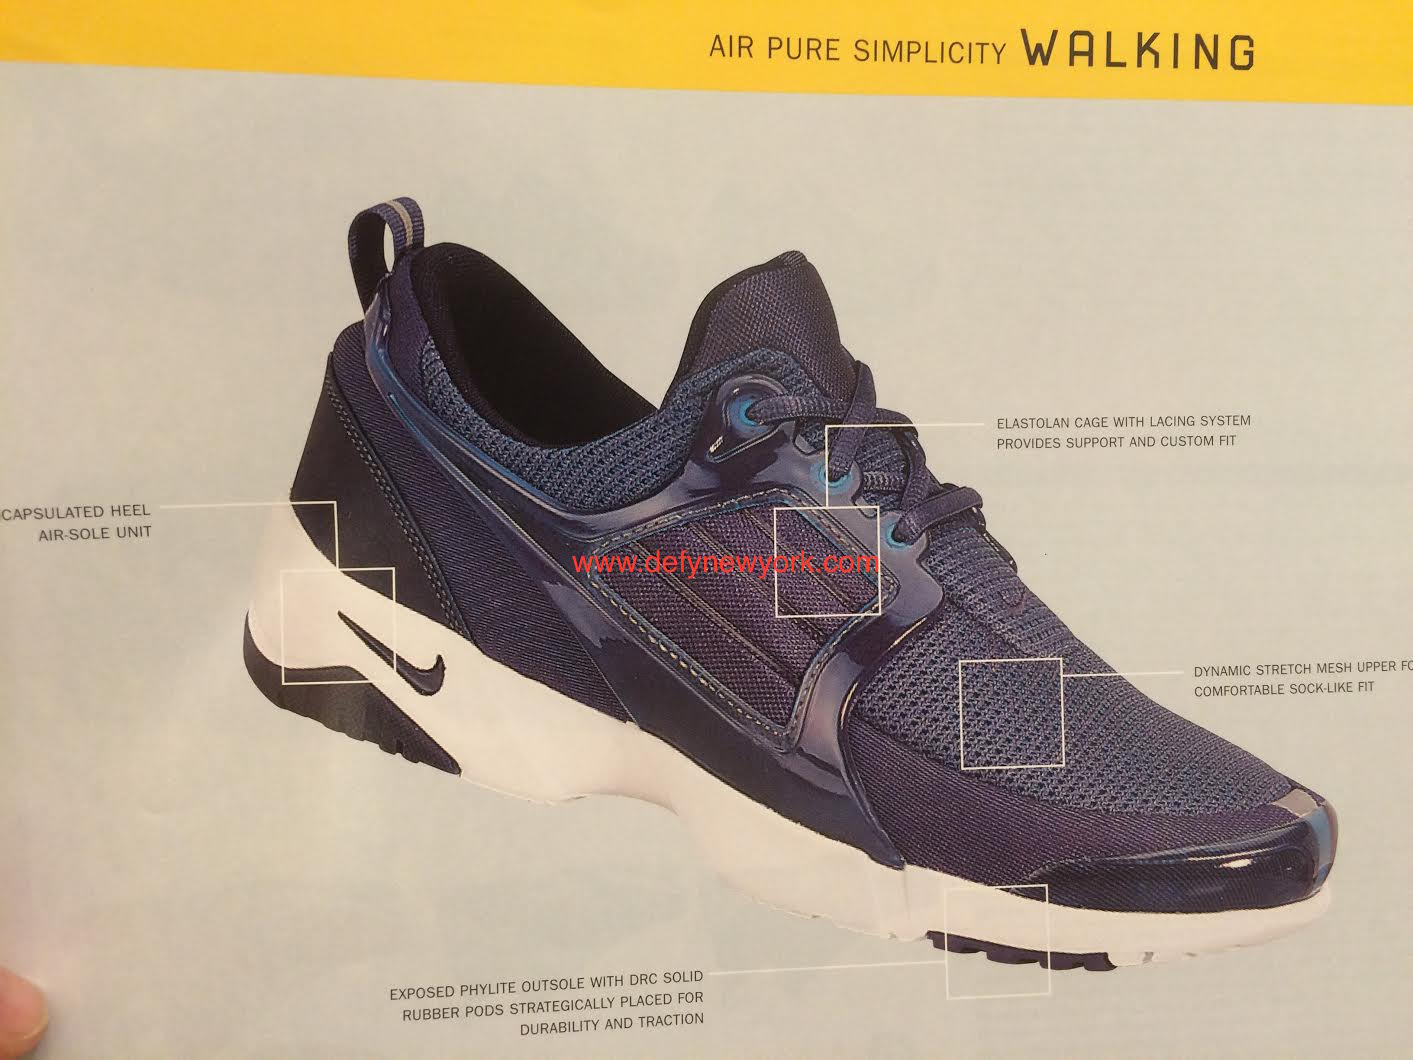 The Presto Goes For A Walk: Nike Air Pure Simplicity Walking Chaussure